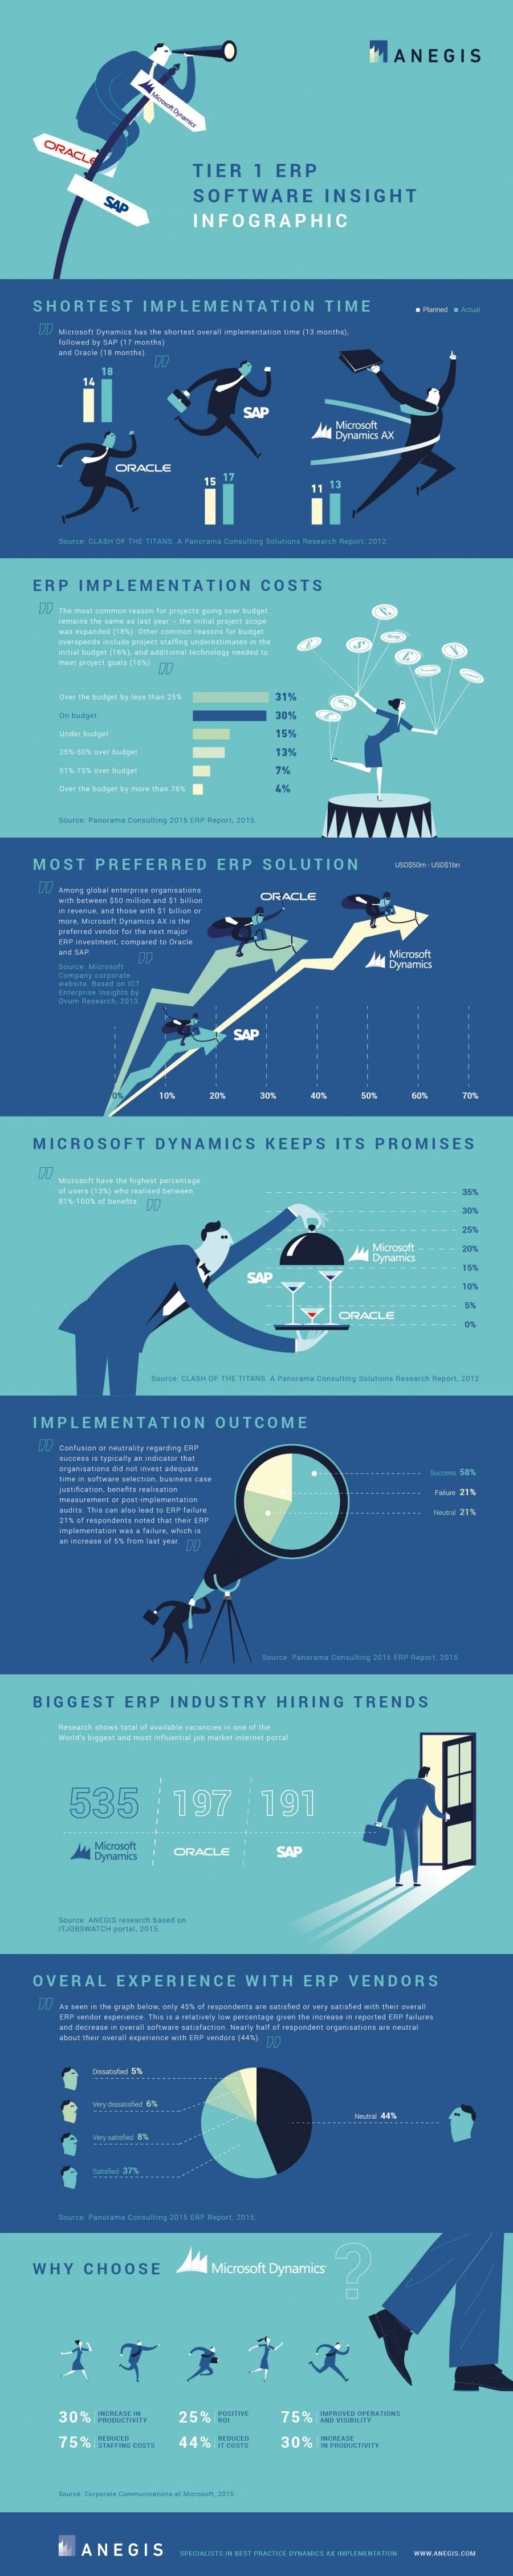 Tier 1 ERP Software insight #infographic